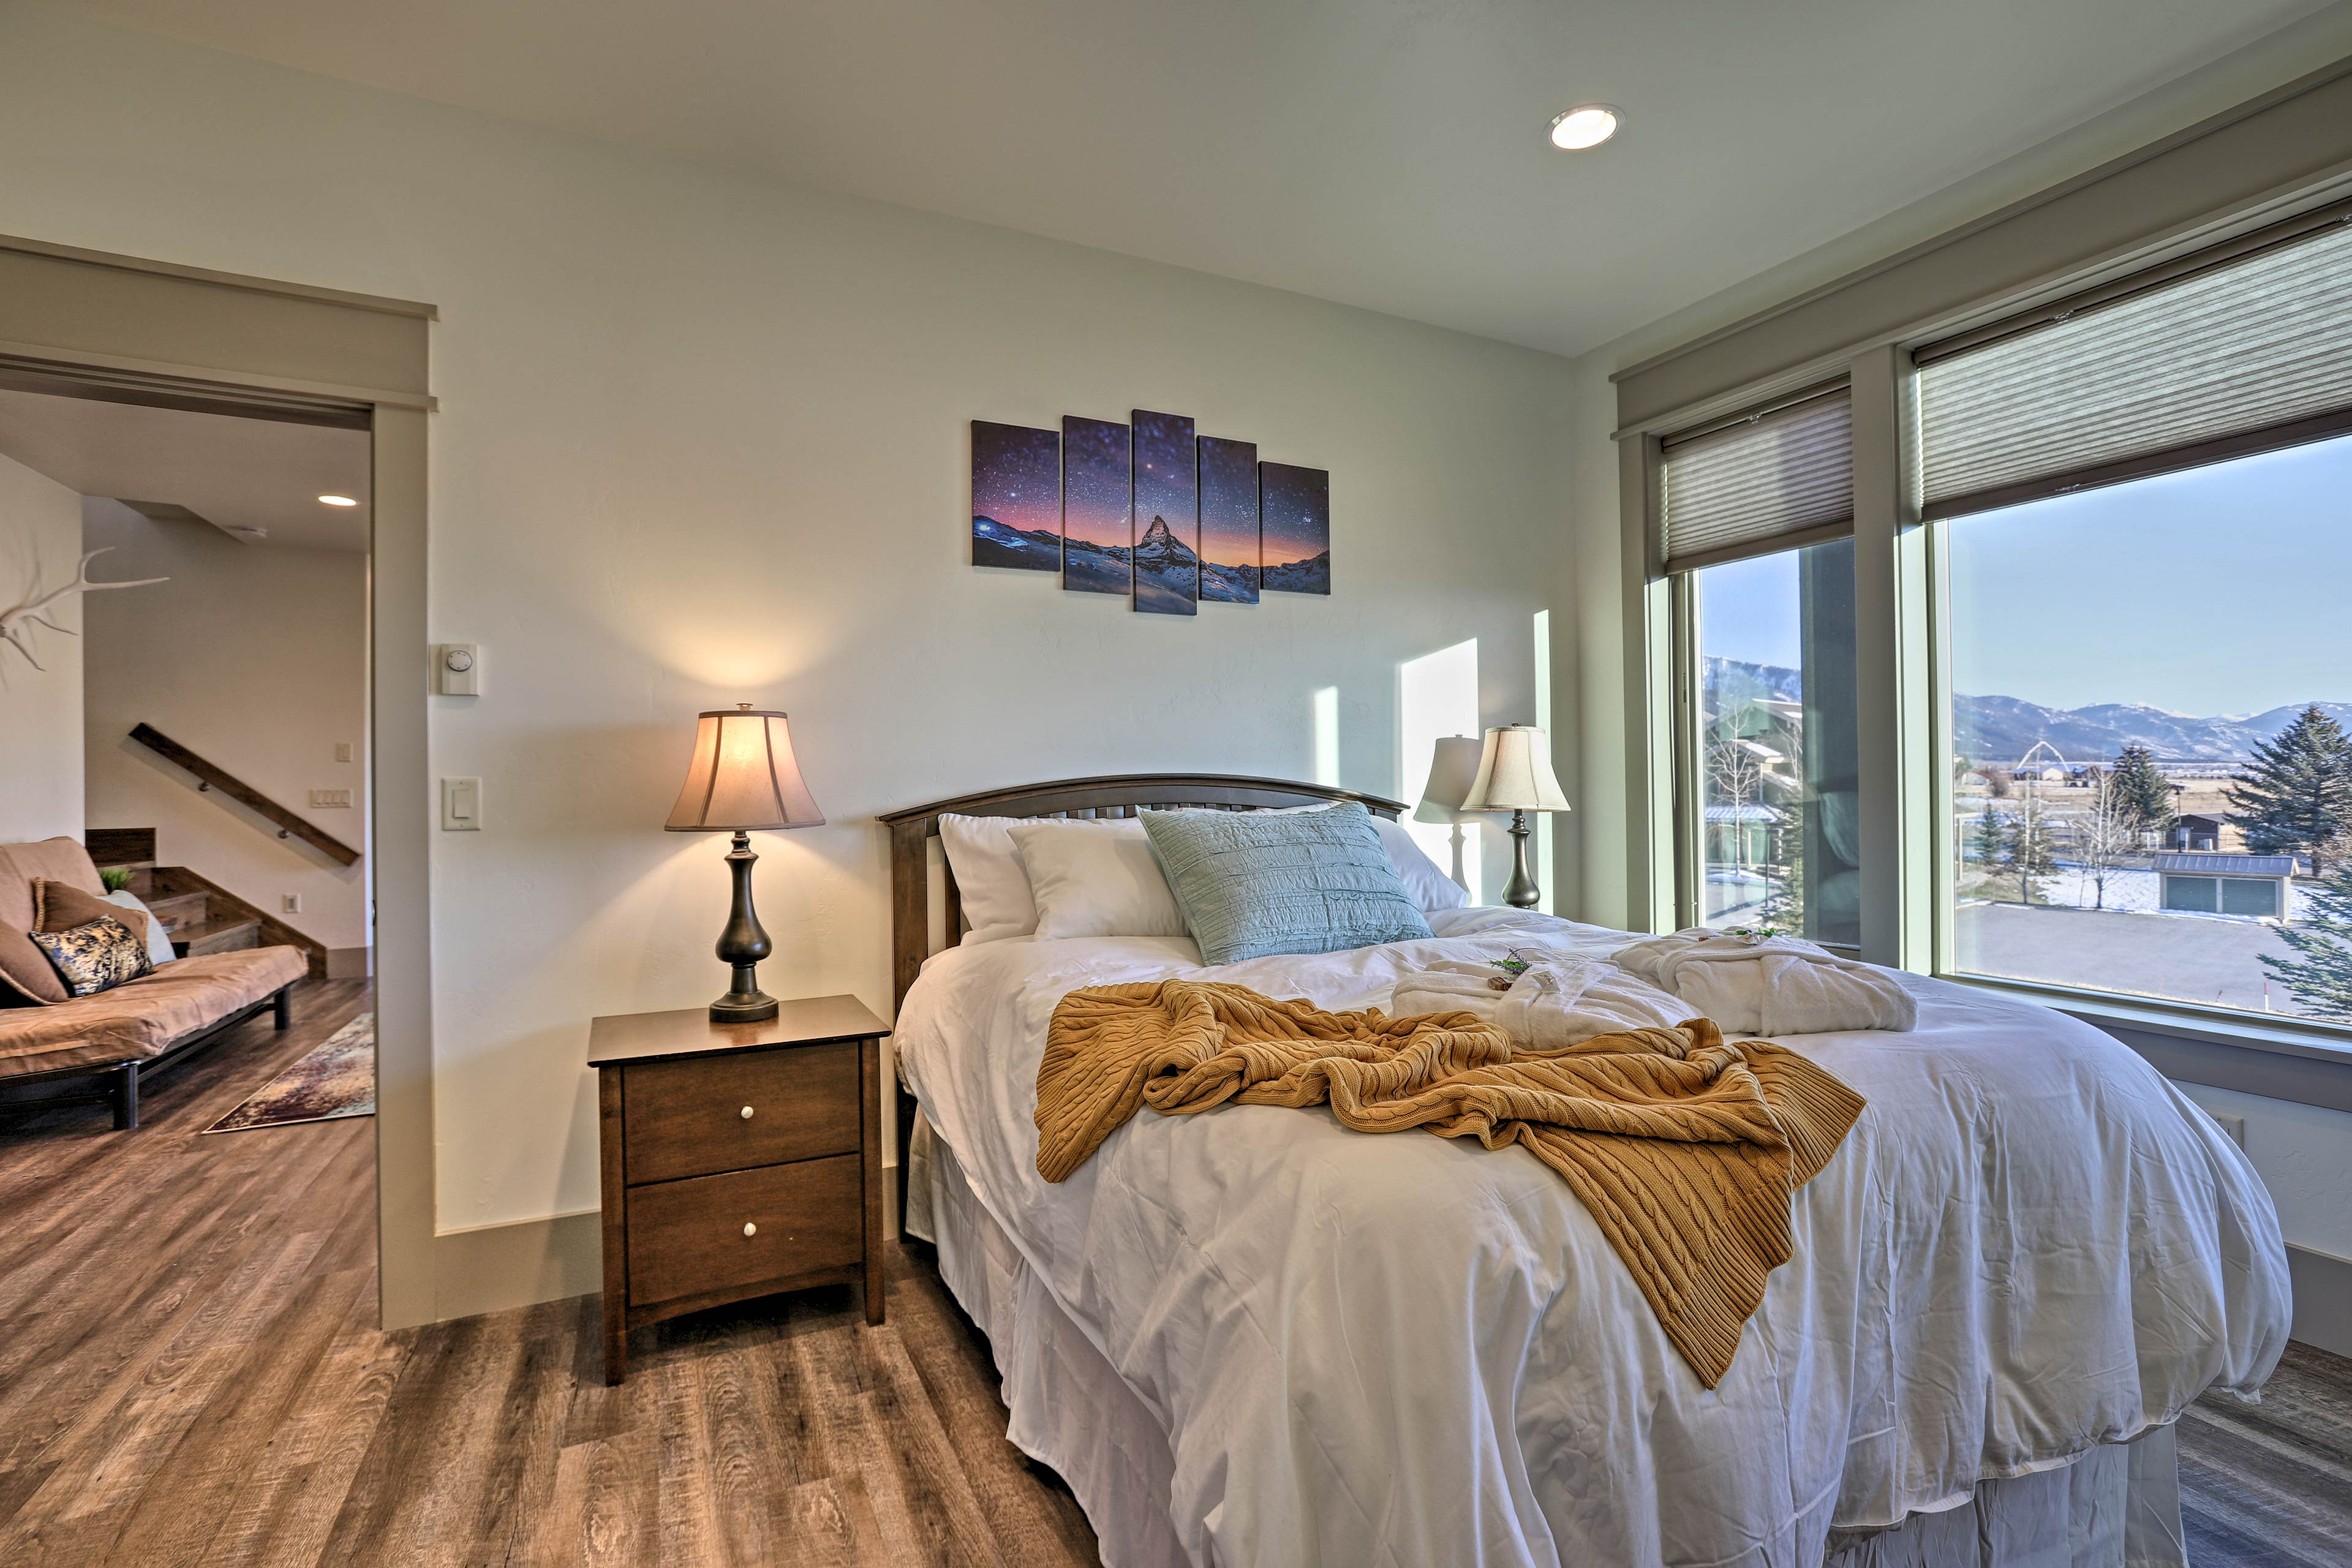 You'll find a comfy queen bed in the fourth bedroom as well.